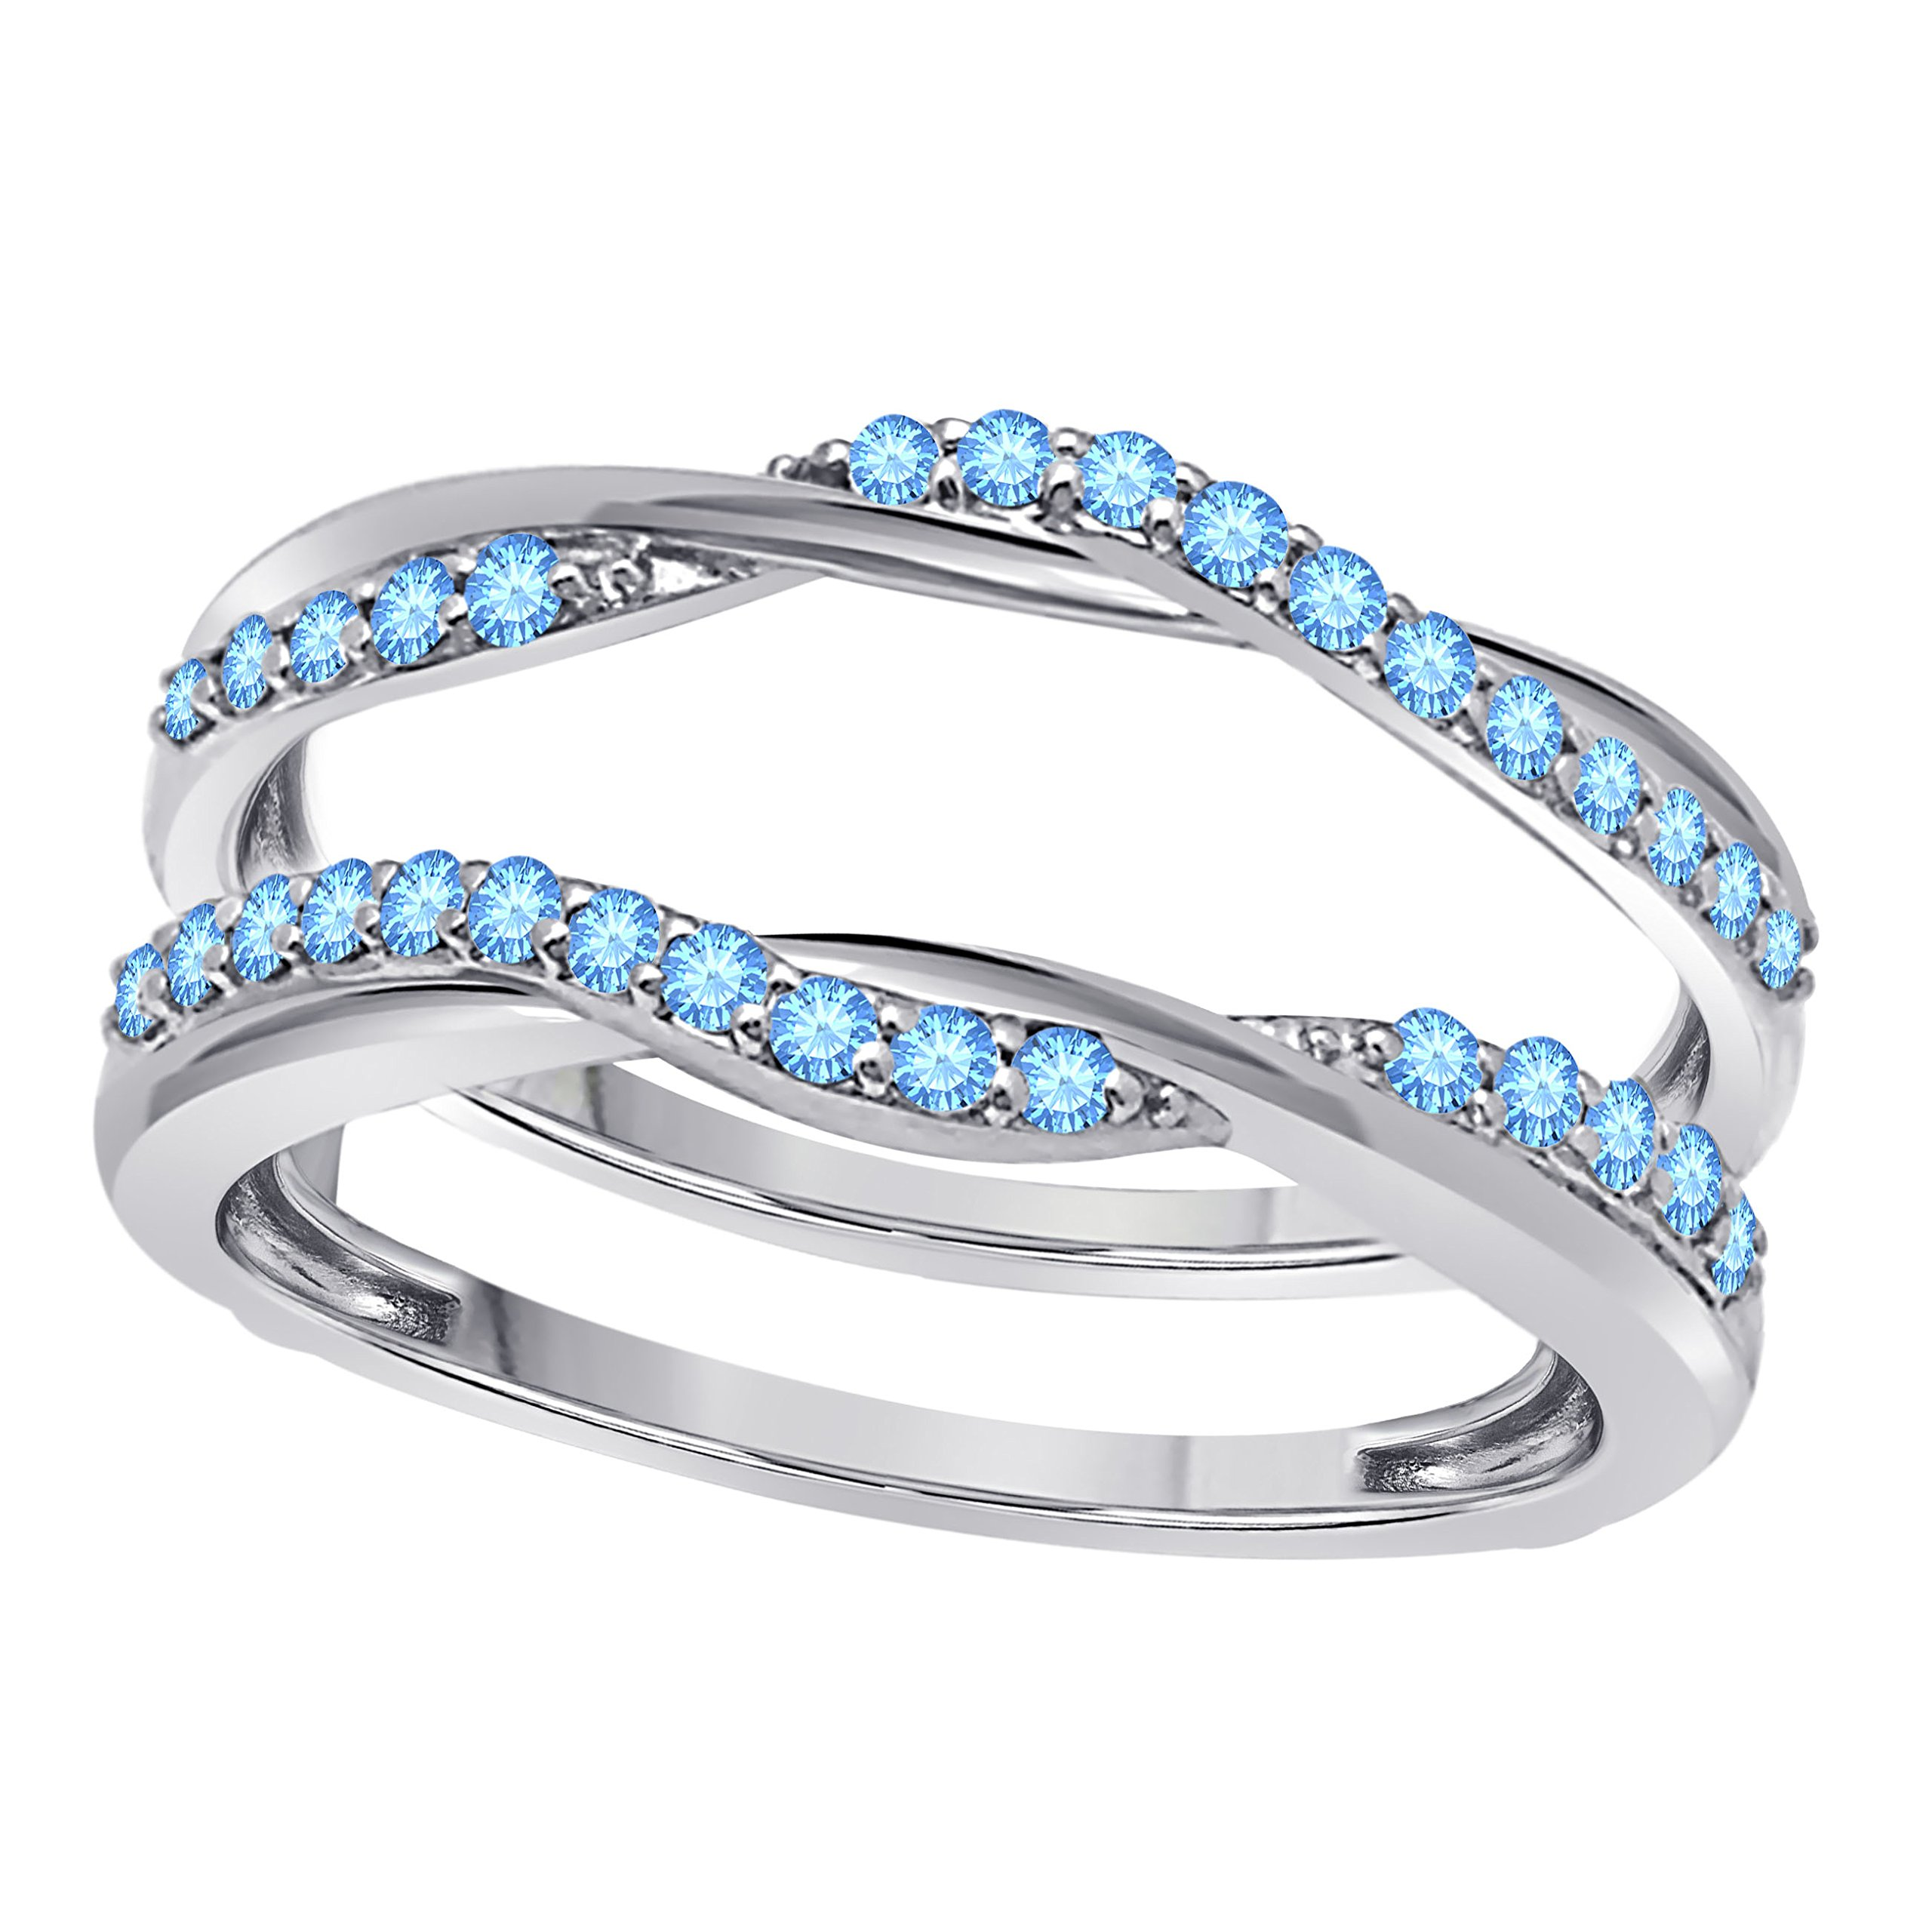 Sterling Silver Plated Delicate Bypass Infinity Style Vintage Wedding Ring Guard Enhancer with CZ Aquamarine 0.50 ct